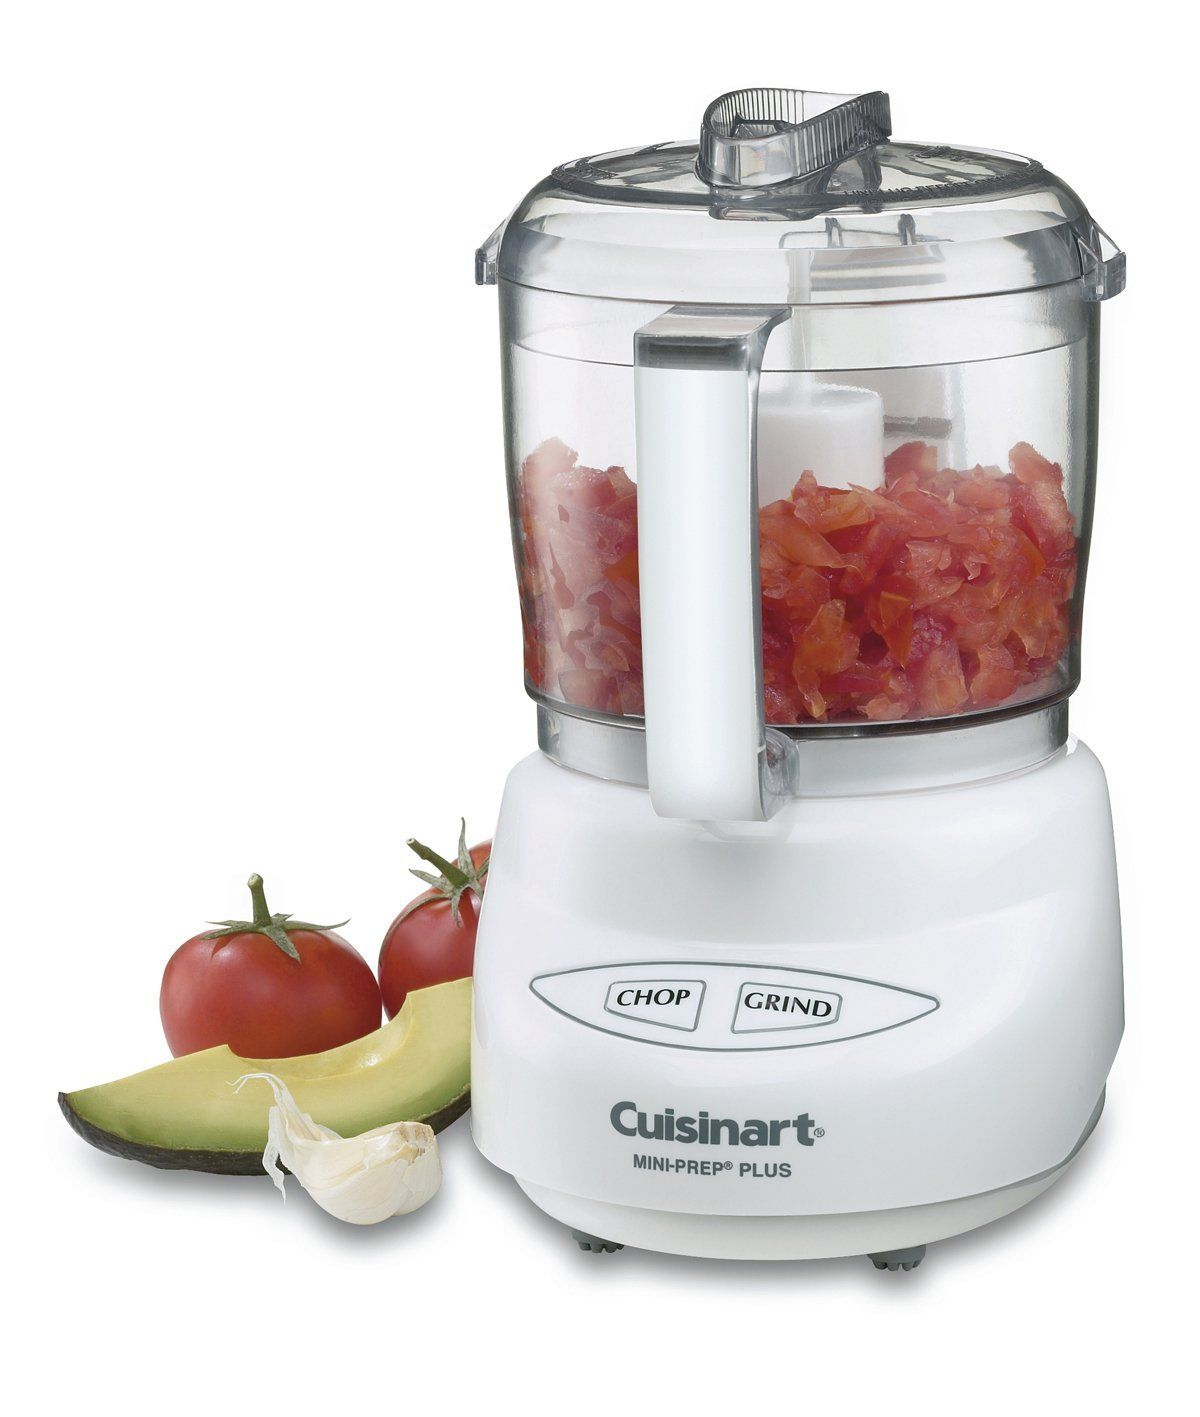 Review on cuisinart dlc 2a mini prep plus food processor mini food review on cuisinart dlc 2a mini prep plus food processor mini food processor forumfinder Gallery